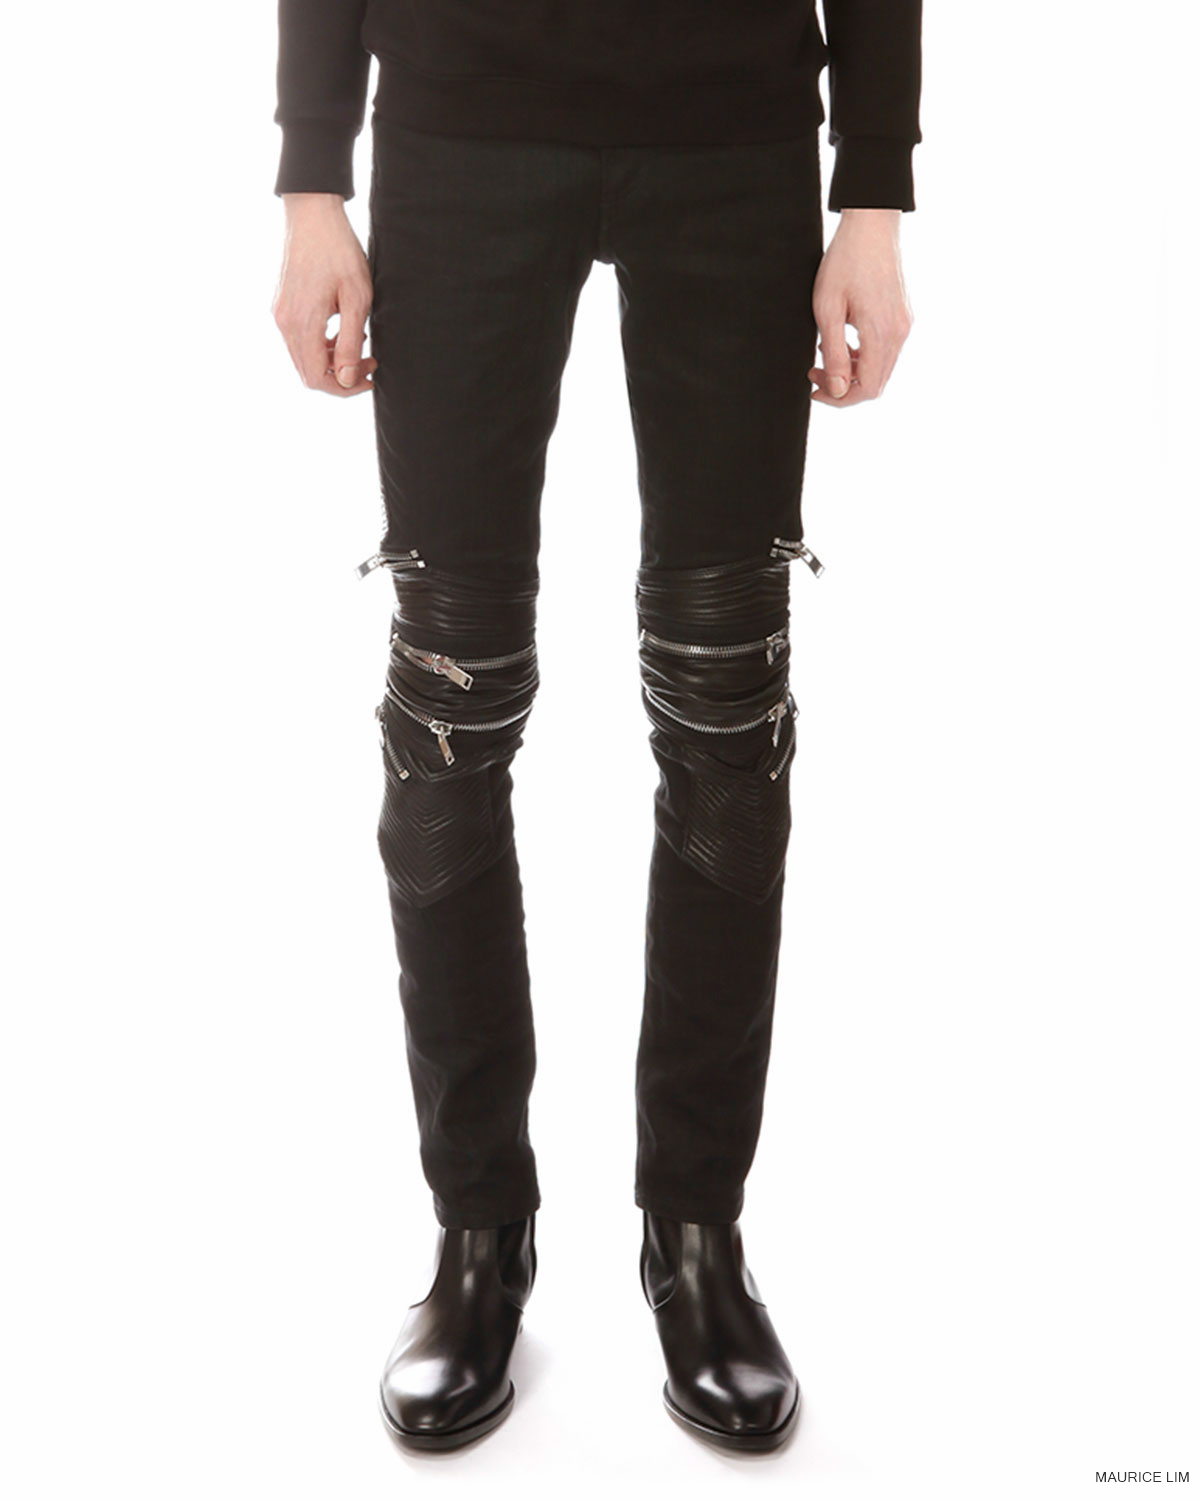 d22c40d0502 Matches Fashion – Saint Laurent Leather and Denim Skinny Biker Jeans. Saint  Laurent offers a slick, modern take on moto-style denim with these skinny  black ...